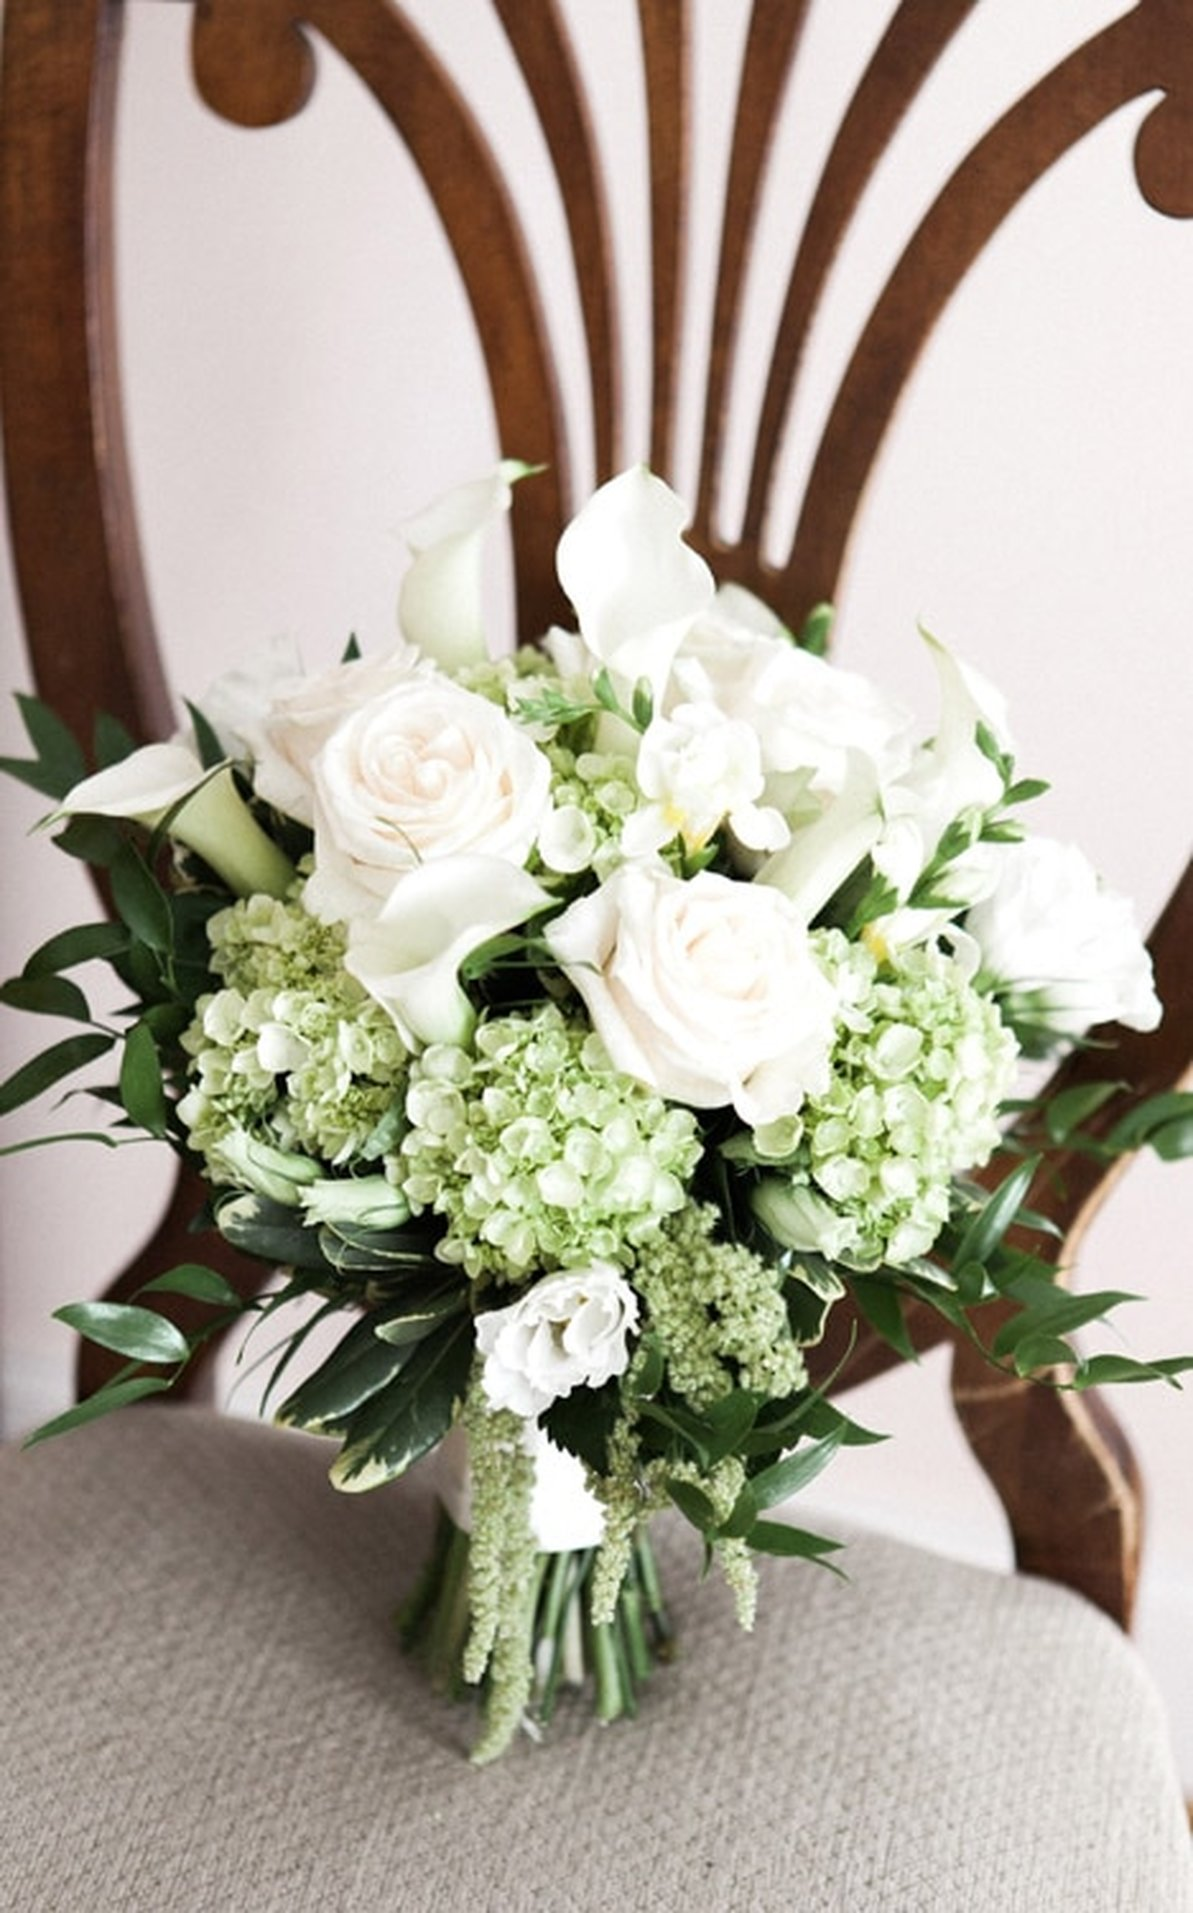 White Roses and Greenery Bridal Bouquet Connecticut Wedding Planner Double G Events